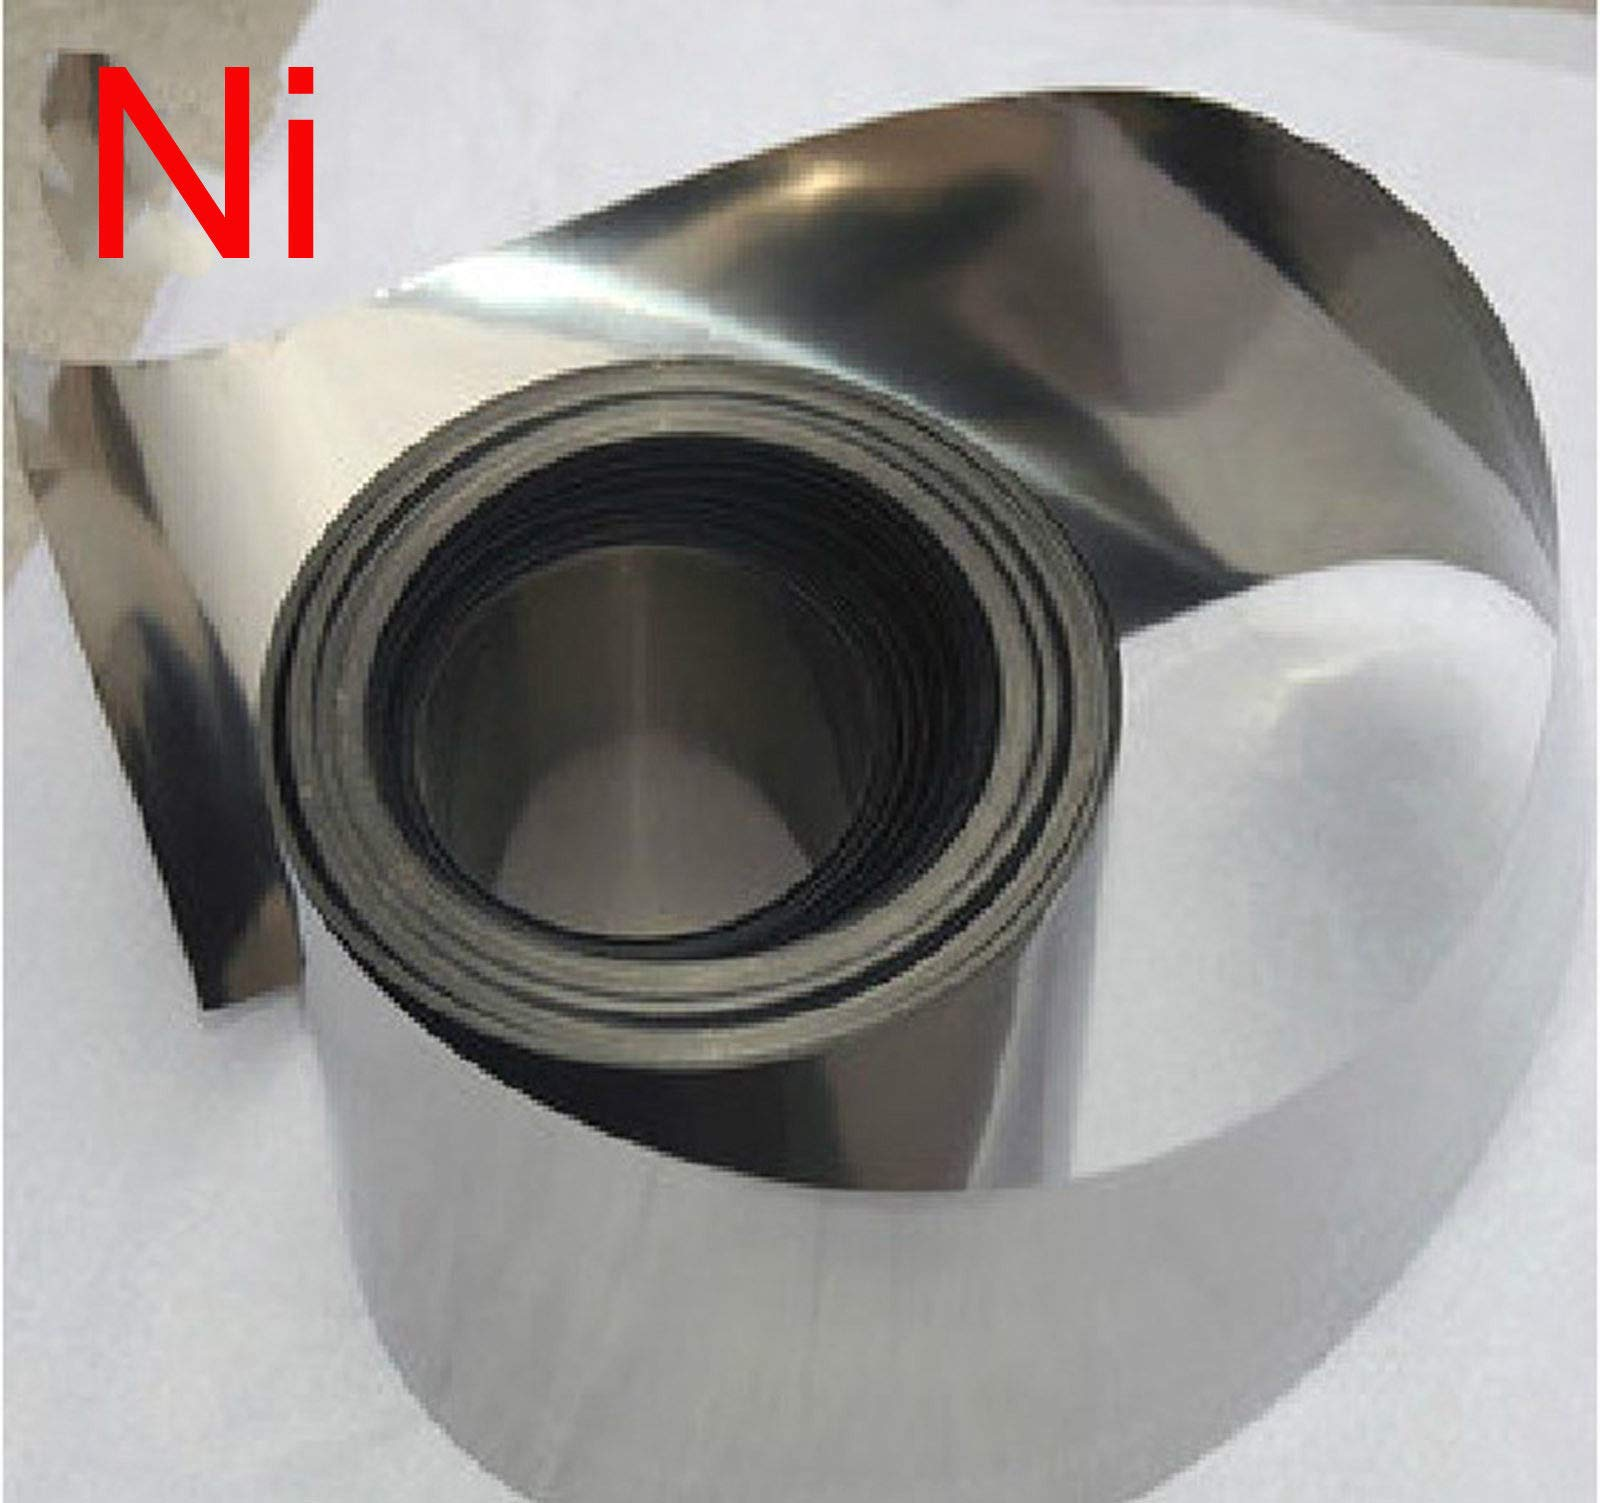 1PCS 99.96% Pure Nickel Ni Metal Foil Thin Sheet 0.1mm x 200mm x 500mm by Nickel